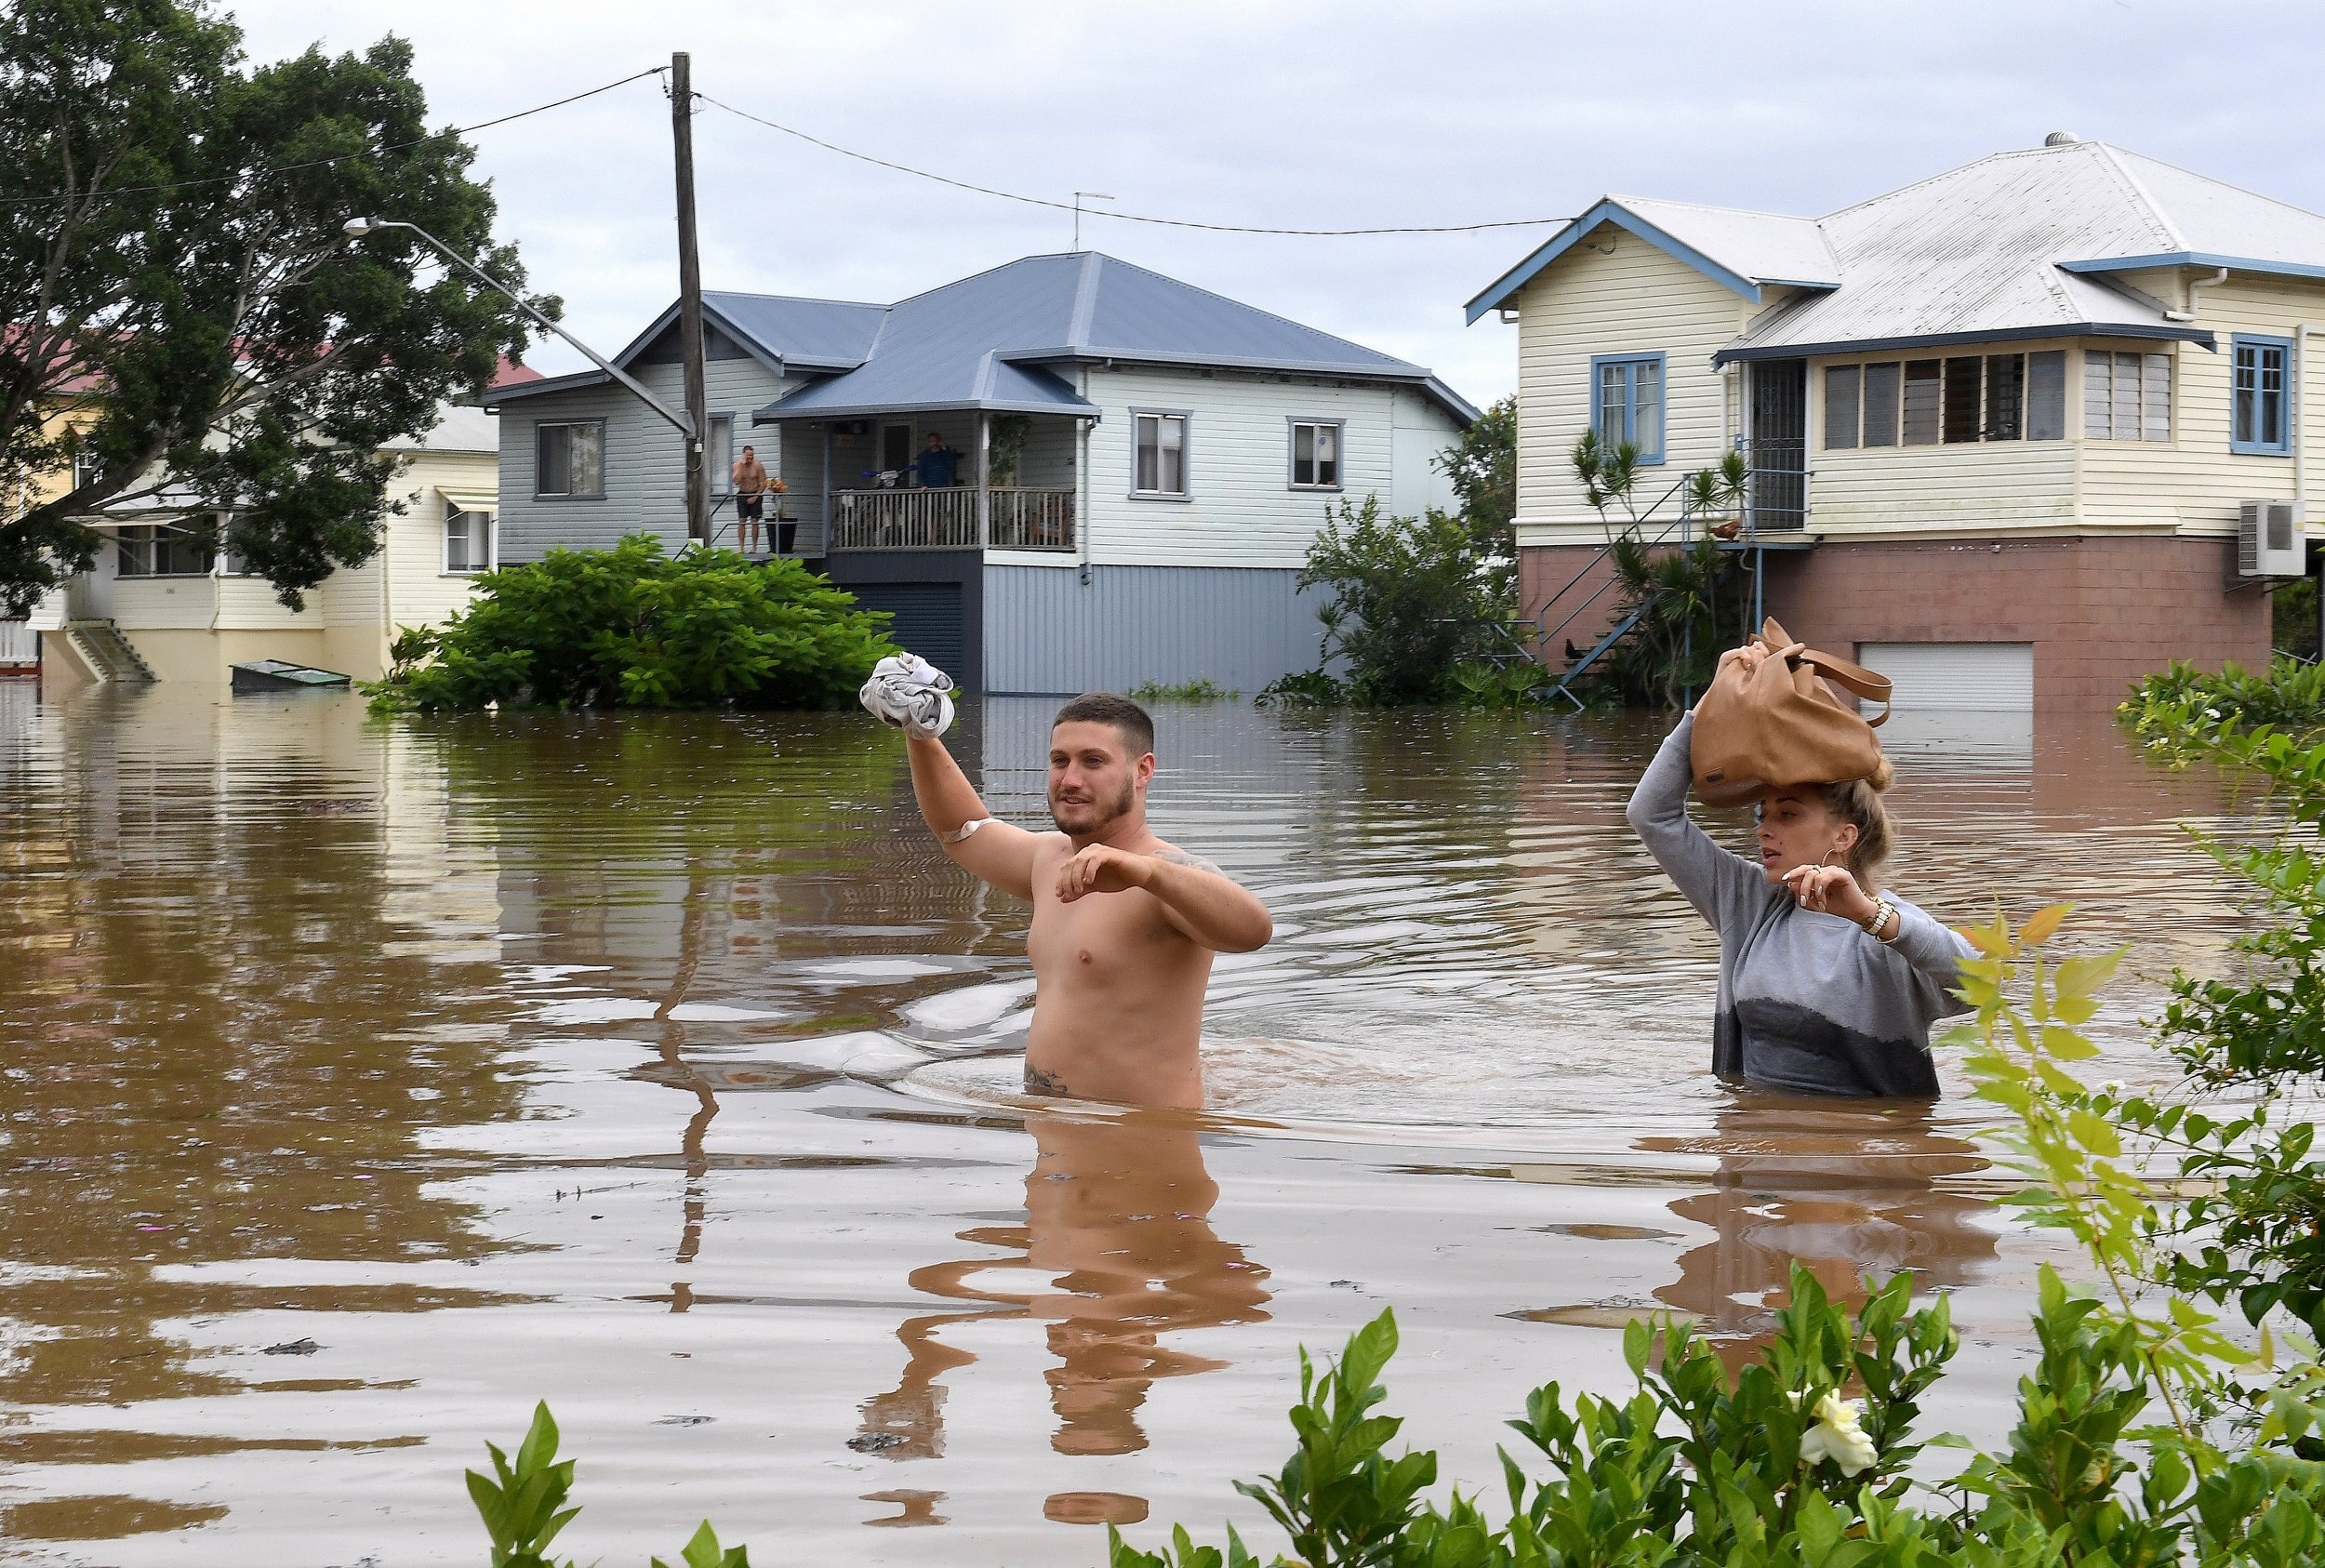 Cyclone Debbie in Australia